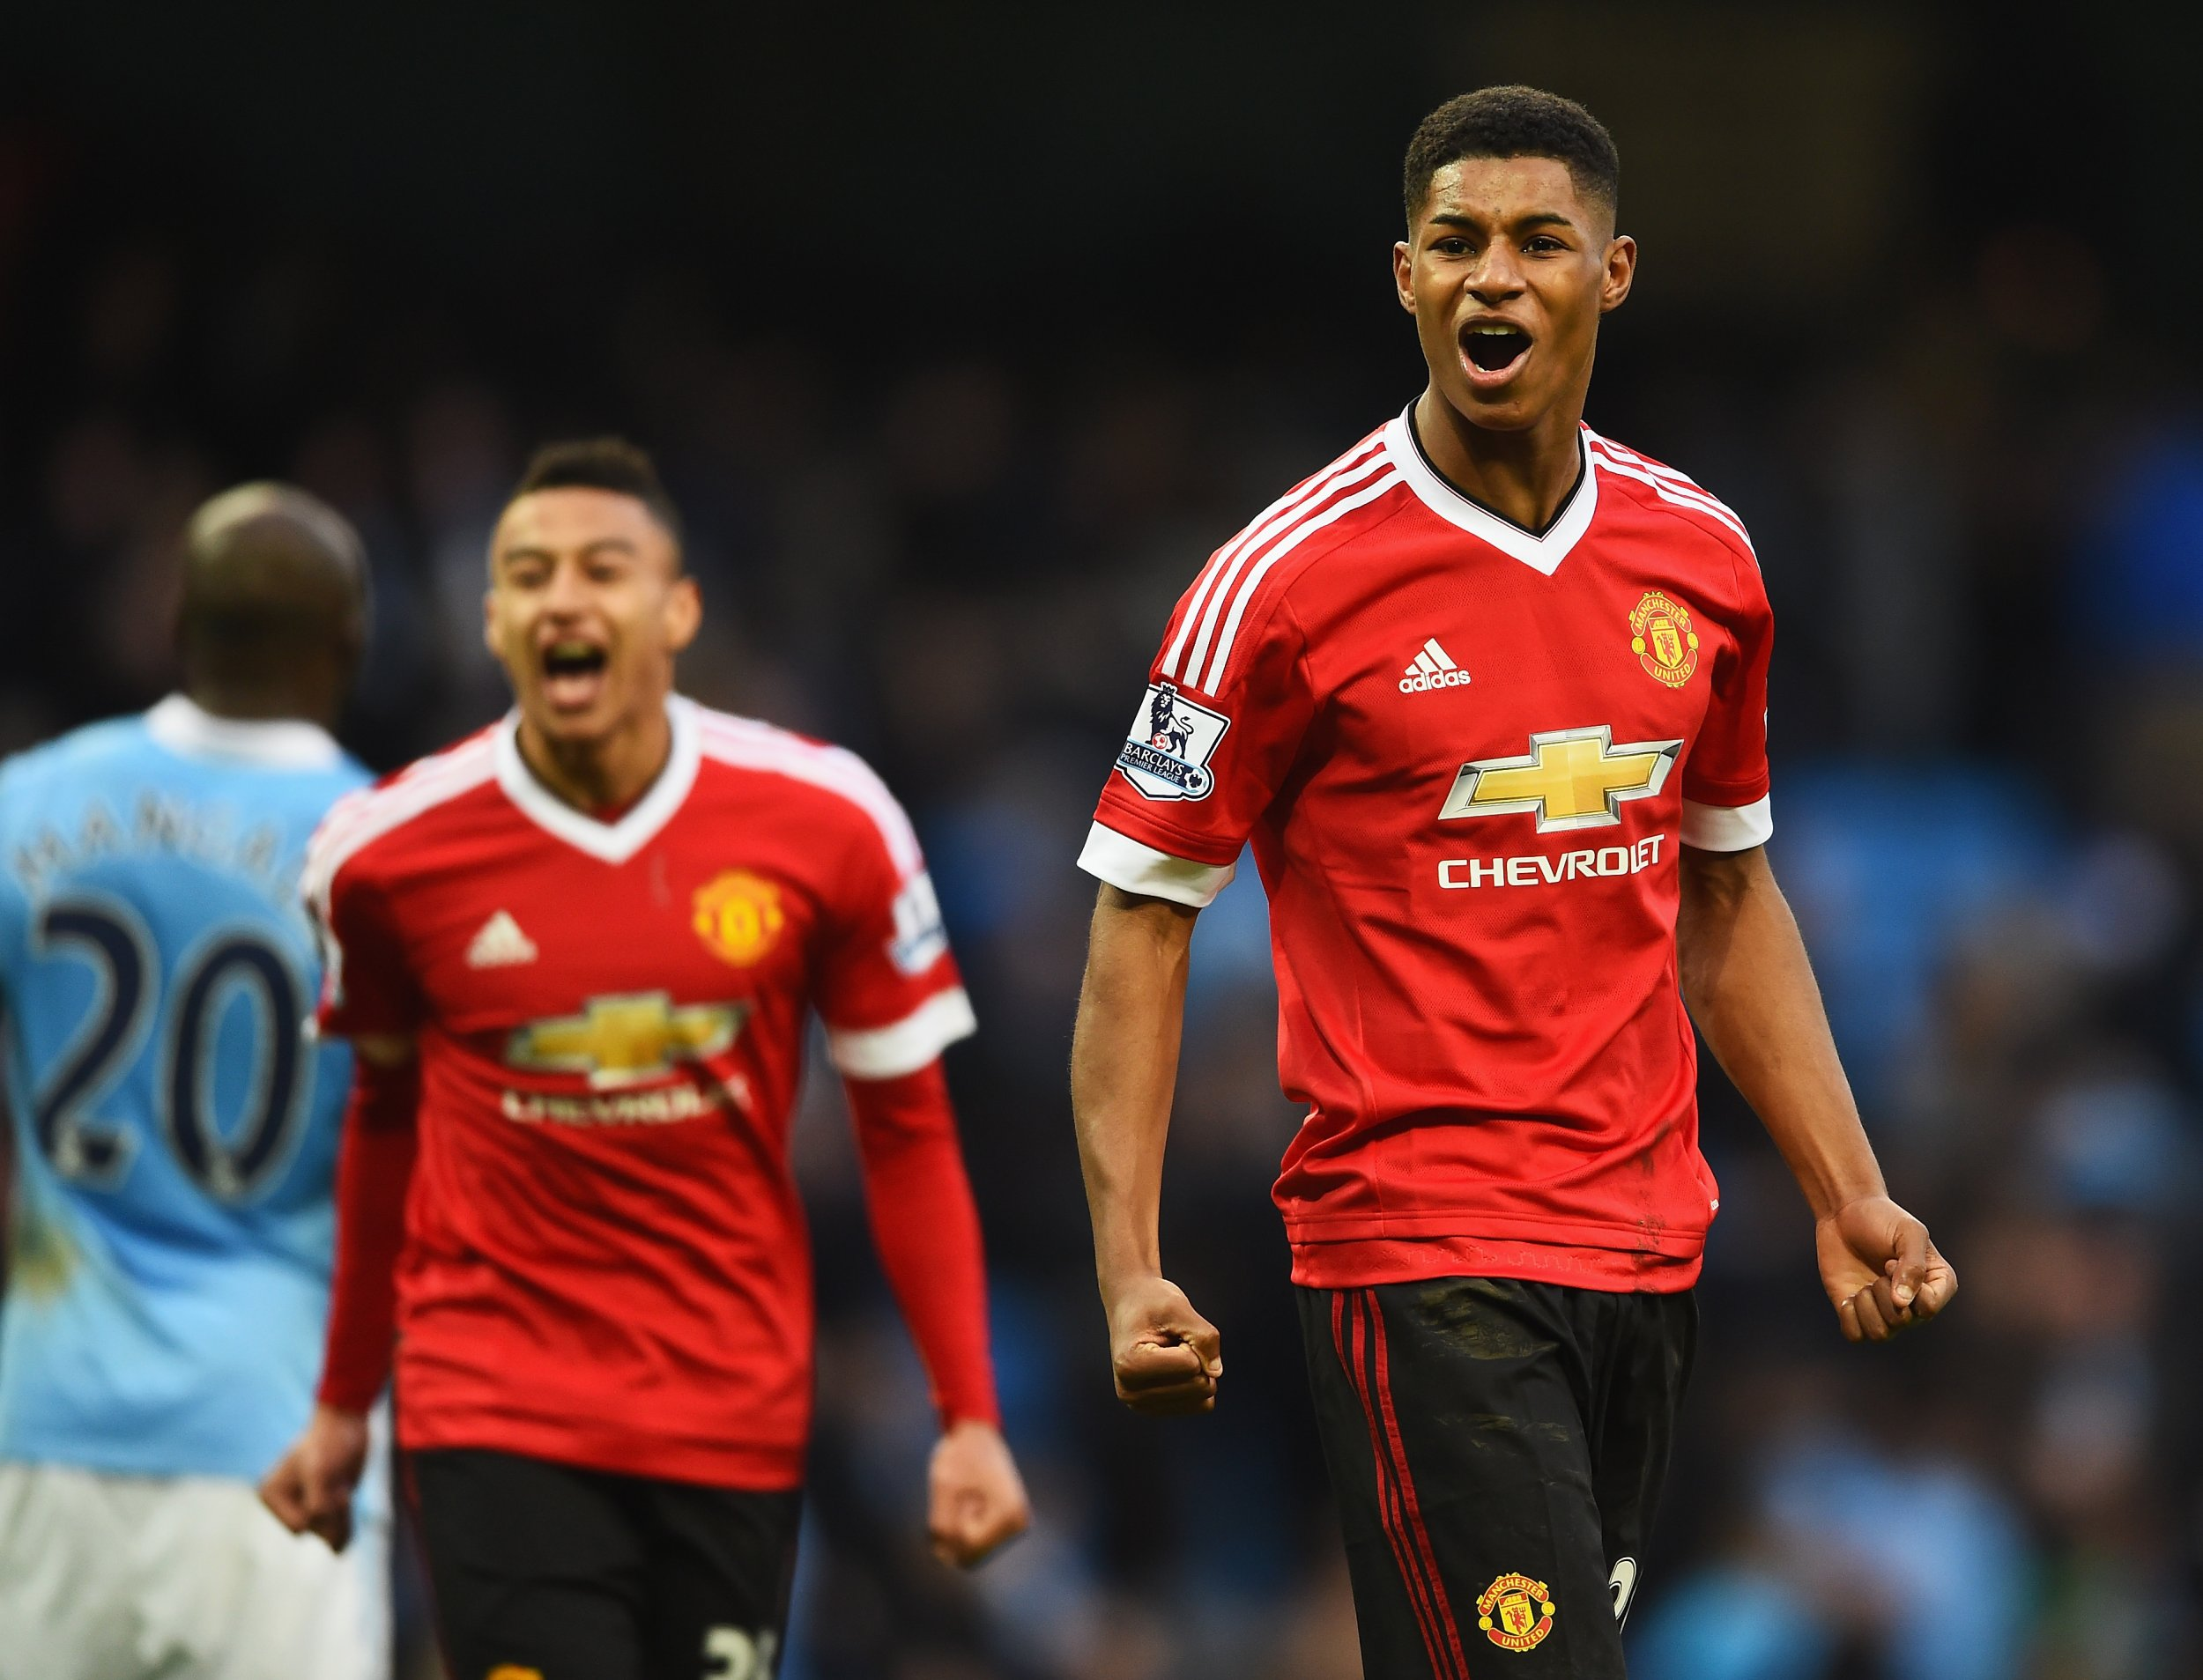 reputable site 7fe03 d33fd Manchester United: Jose Mourinho Youngsters Given England ...